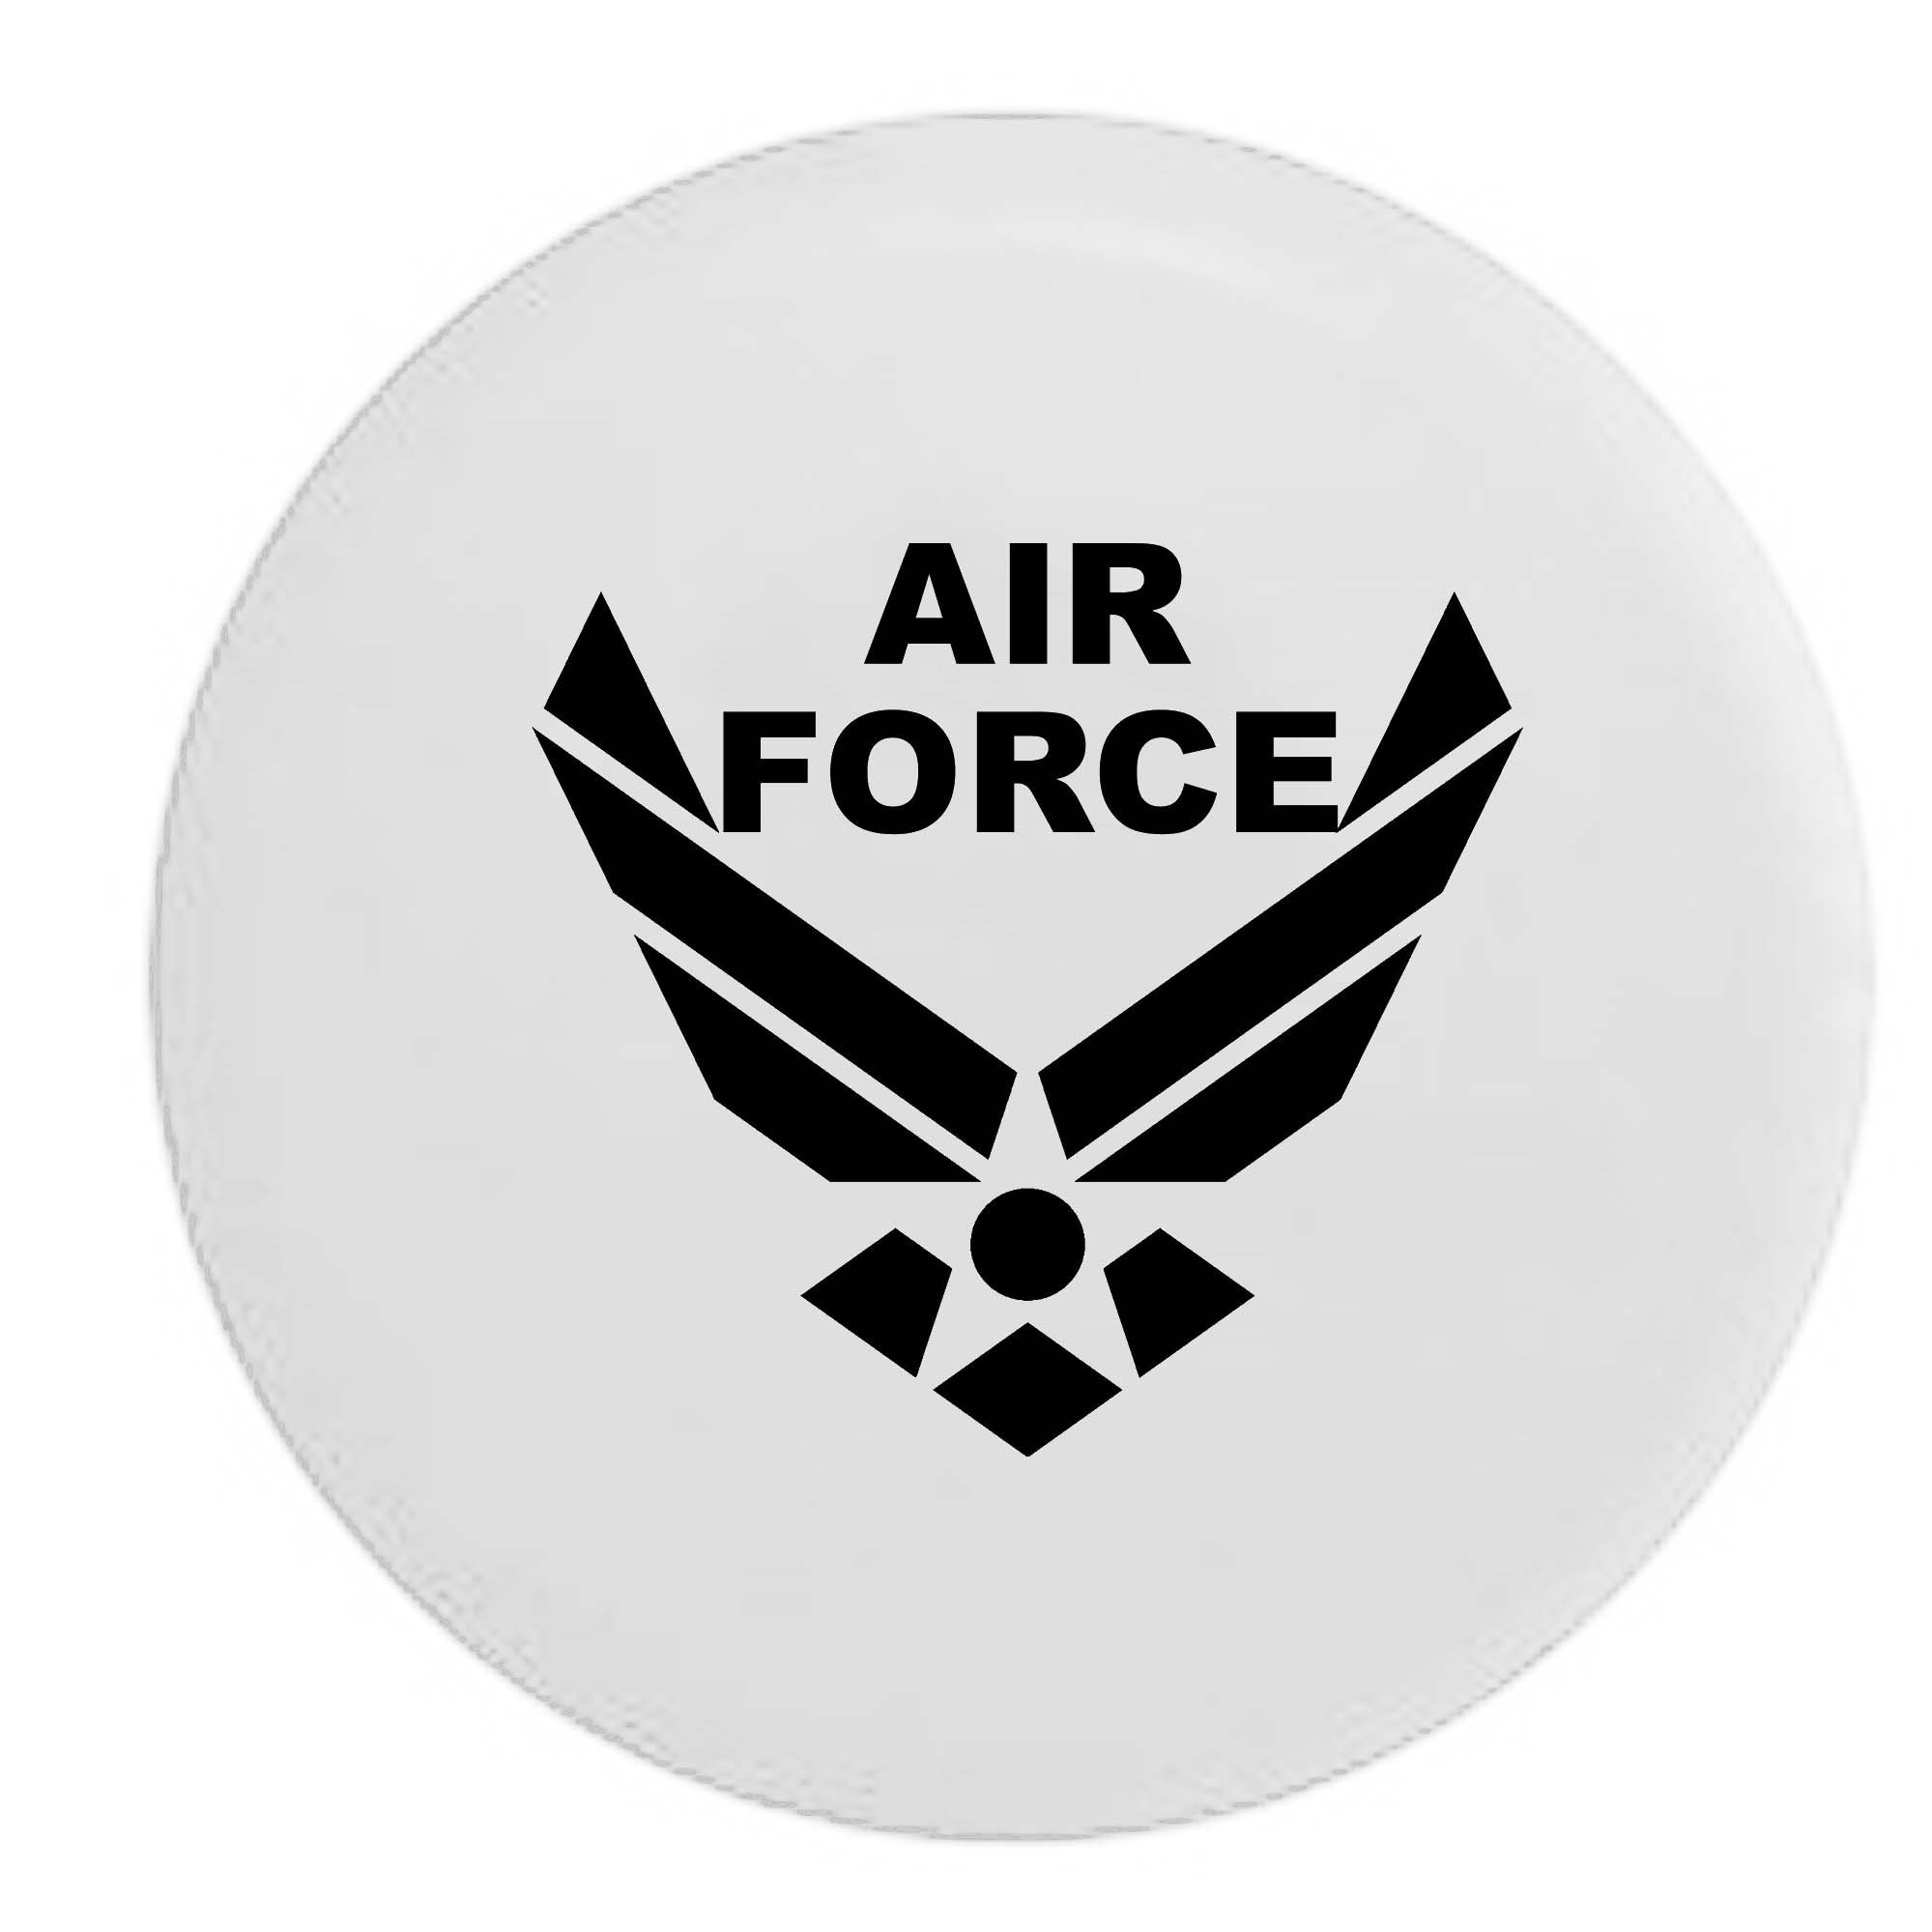 Pike USAF Air Force Military Trailer RV Spare Tire Cover OEM Vinyl White 29 in